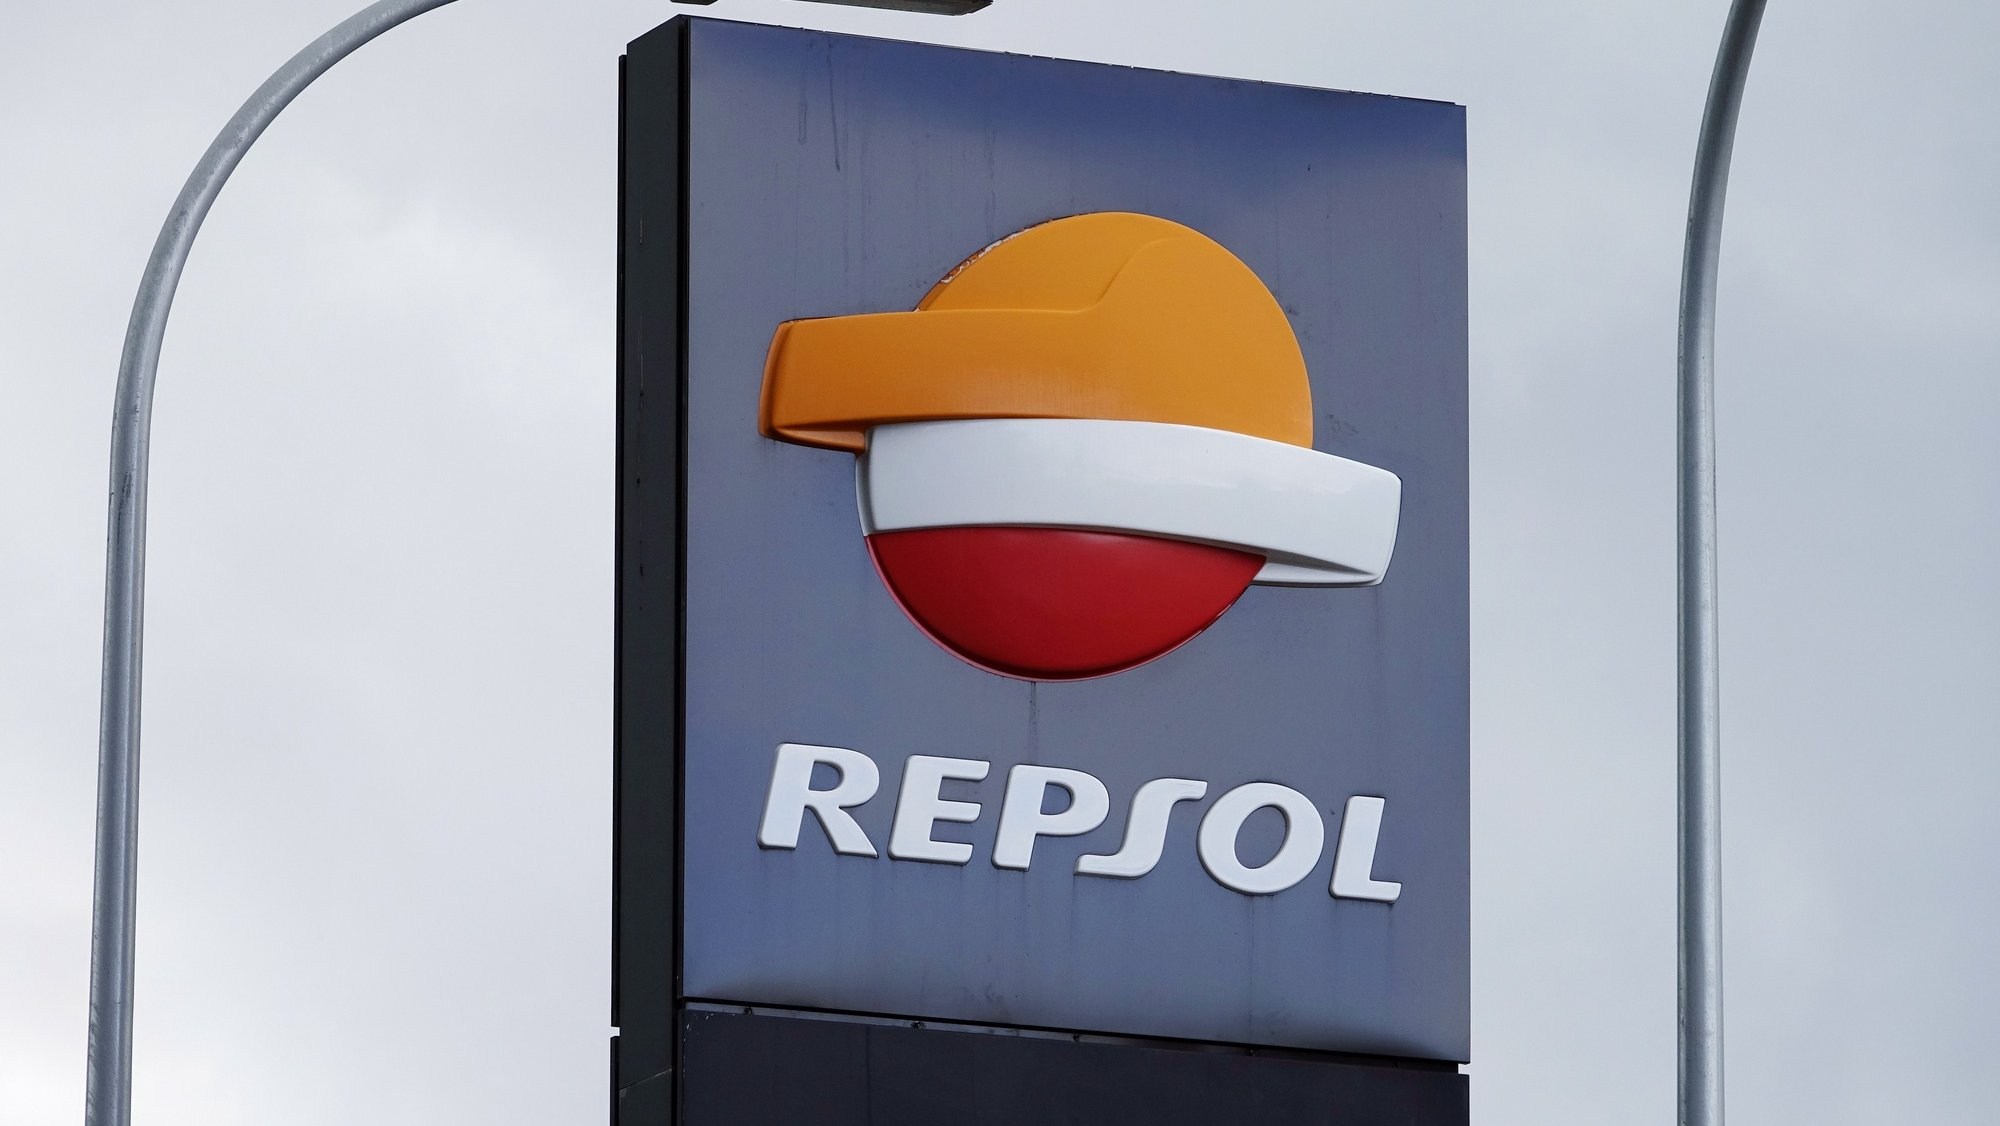 epa08562823 (FILE) - A general view of signage at a Repsol service station in Malaga, Spain, 16 October 2018 (reissued 23 July 2020). Repsol on 23 July 2020 released their first half-year 2020 results saying they posted an adjusted net income of 189 million euros for the first half of 2020 amid the Covid-19, coronavirus pandemic. Repsol said the pandemic that led to a historic fall in oil and gas prices resulted in a negative impact of 1.088 billion euros on the companys inventories as the company adjusted its price curves that in turn affected the book value of its Upstream assets and is reflected in special item results of -1.585 billion euros. As a result of the above, net income in the first half-year stood at -2.484 billion euros.  EPA/MAURITZ ANTIN *** Local Caption *** 54740854